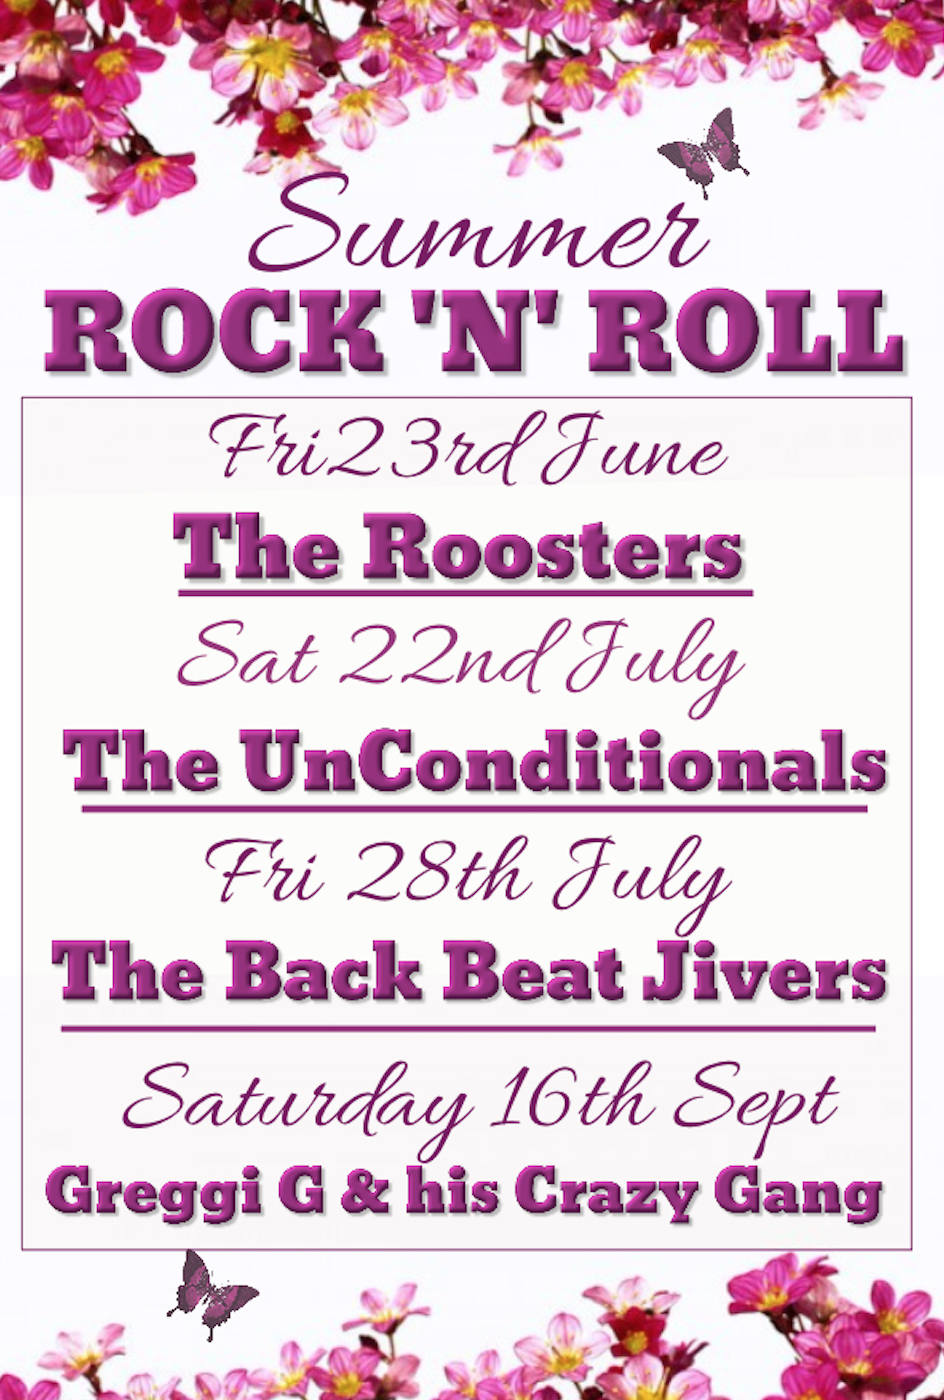 Summer Poster - Rock n roll